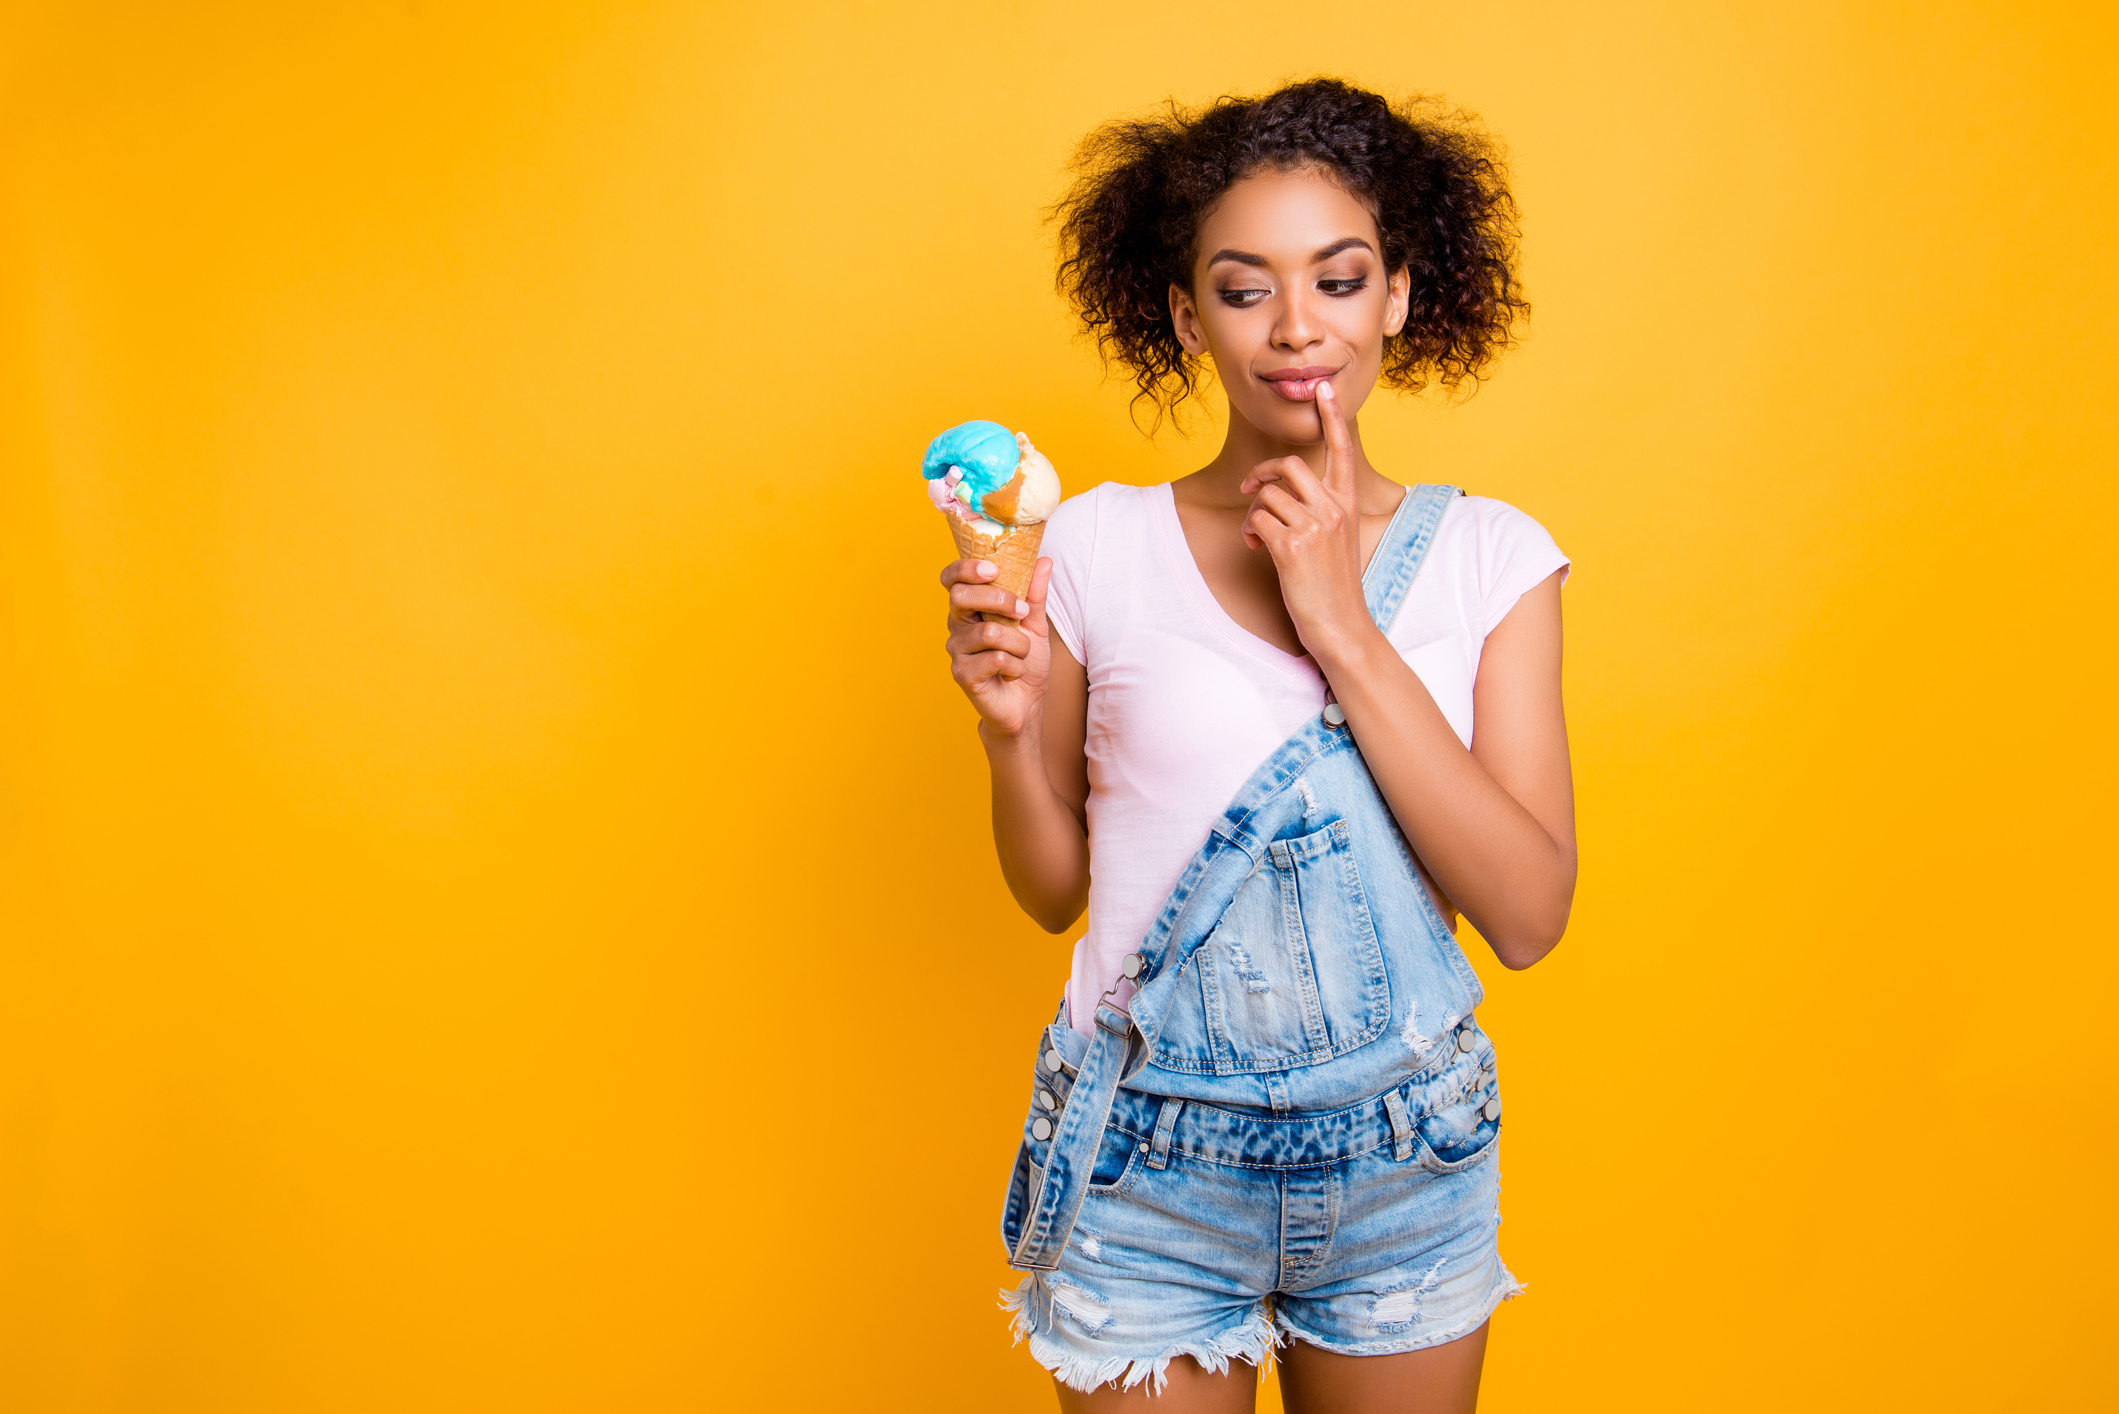 A young woman holds an ice cream cone on a yellow background